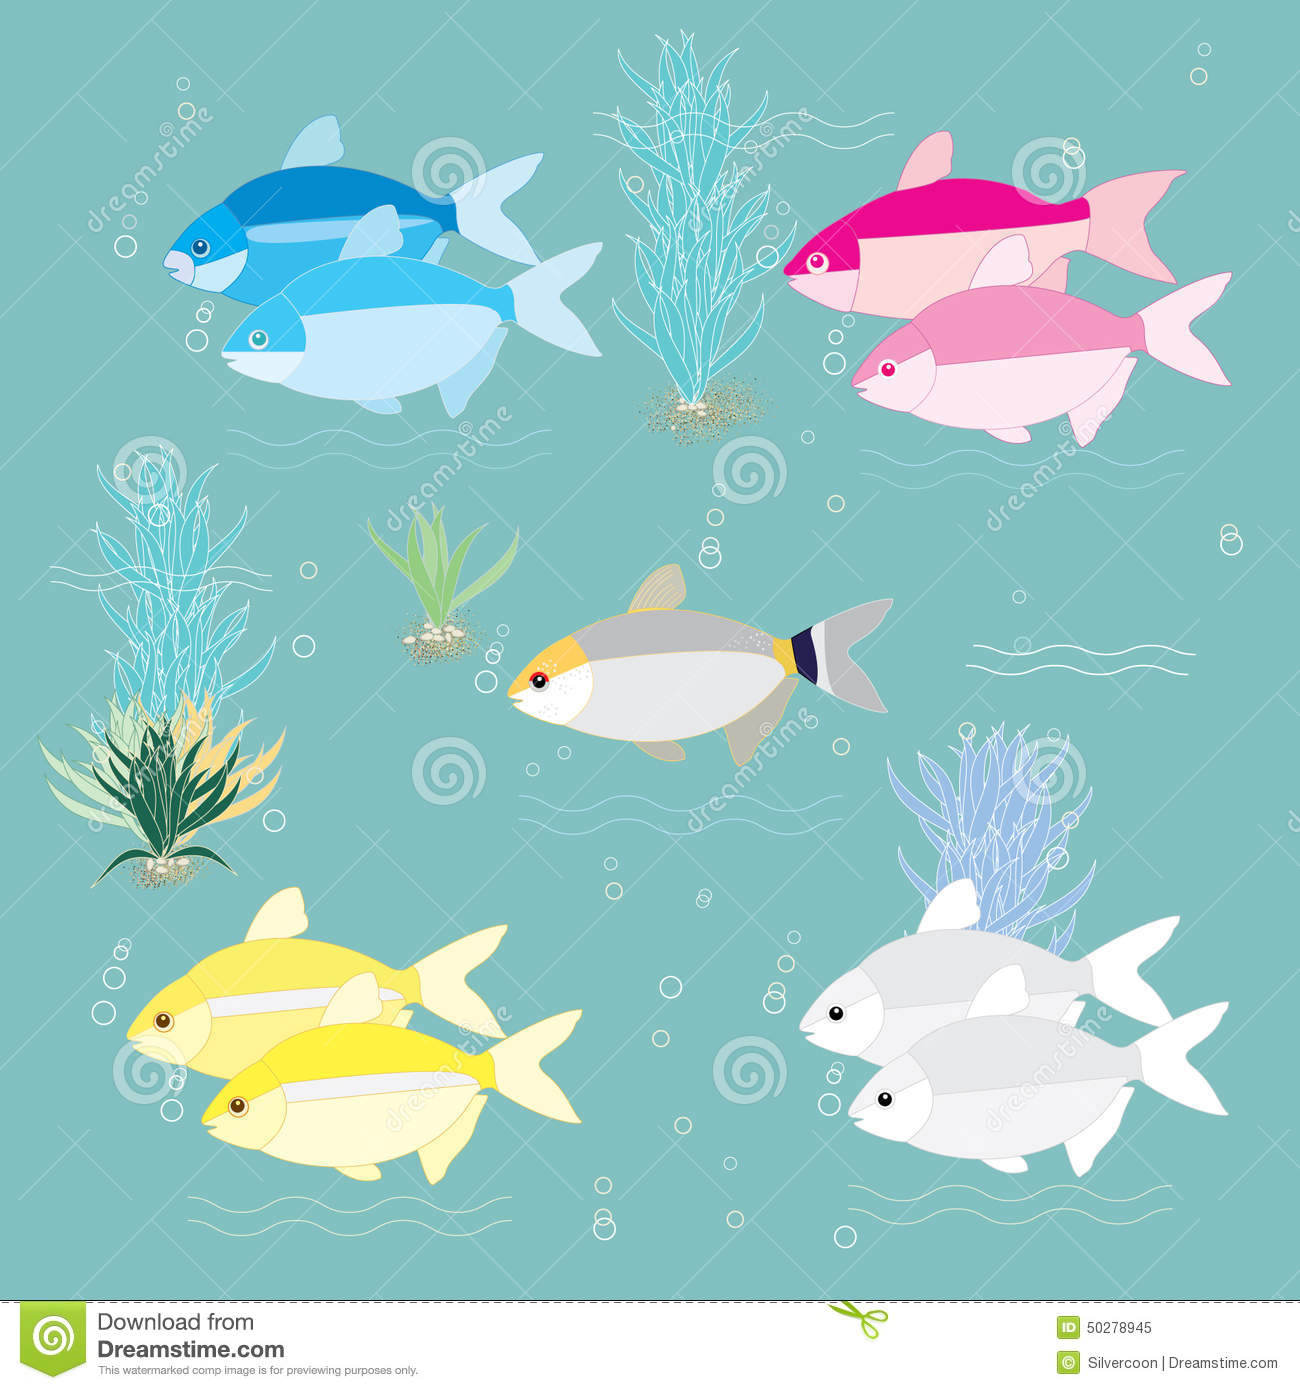 Tetras cartoons illustrations vector stock images 10 for What fish is good for you